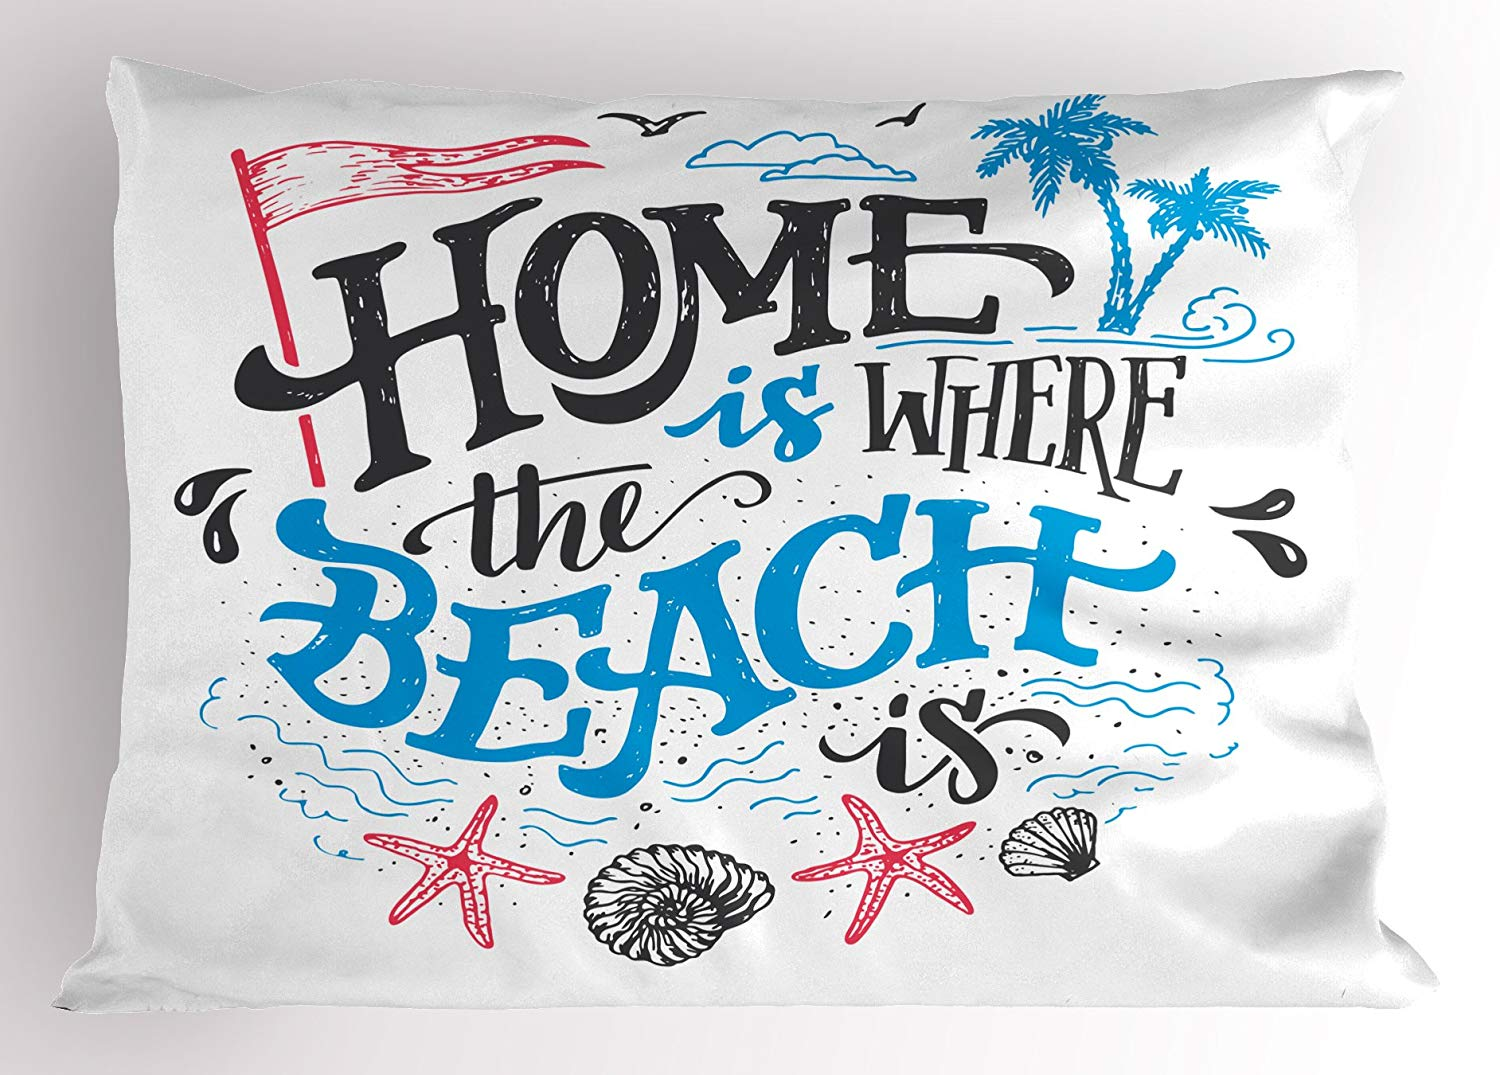 Ambesonne Quote Pillow Sham, Tropical Summer Theme Home is Where The Beach is Phrase, Decorative Standard Size Printed Pillowcase, 26 X 20 inches, Hot Pink Azure Blue and Charcoal Grey